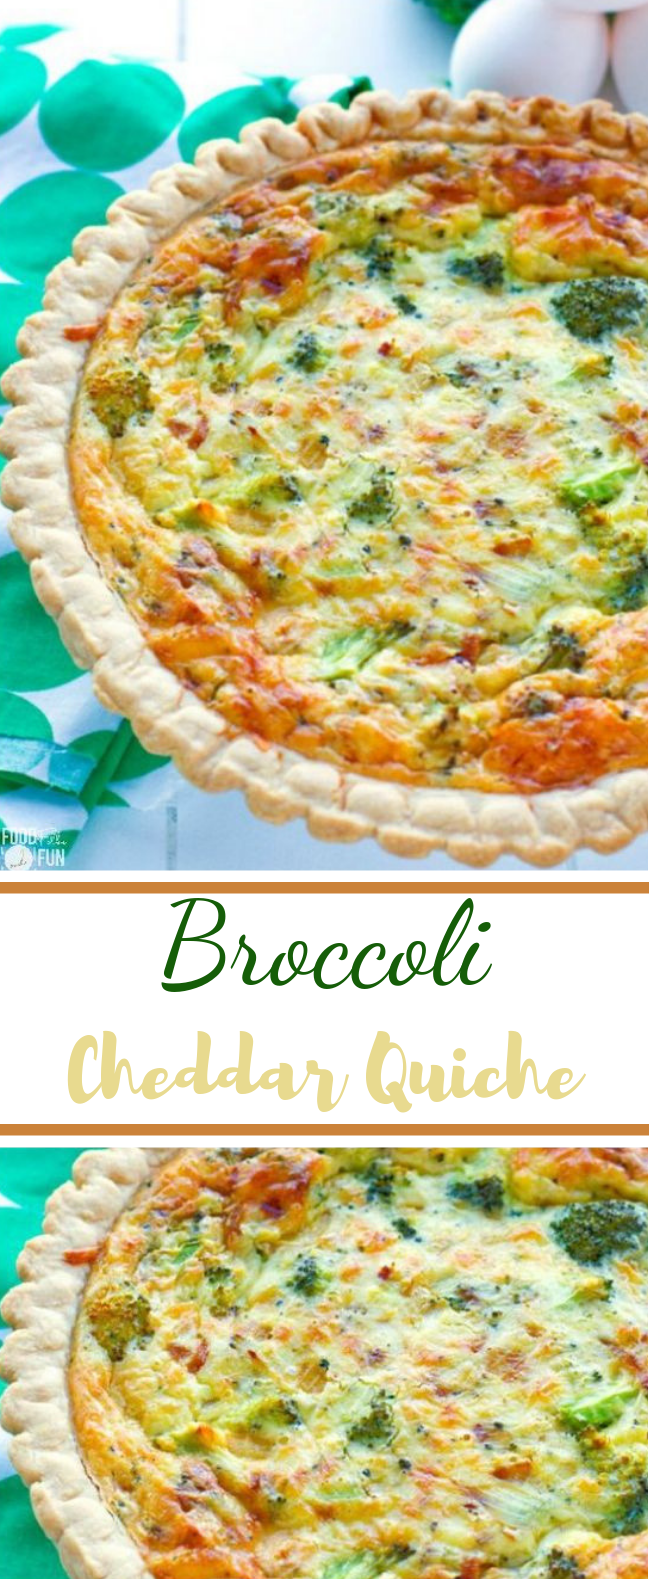 Easy Broccoli Quiche #healthy #vegetarian